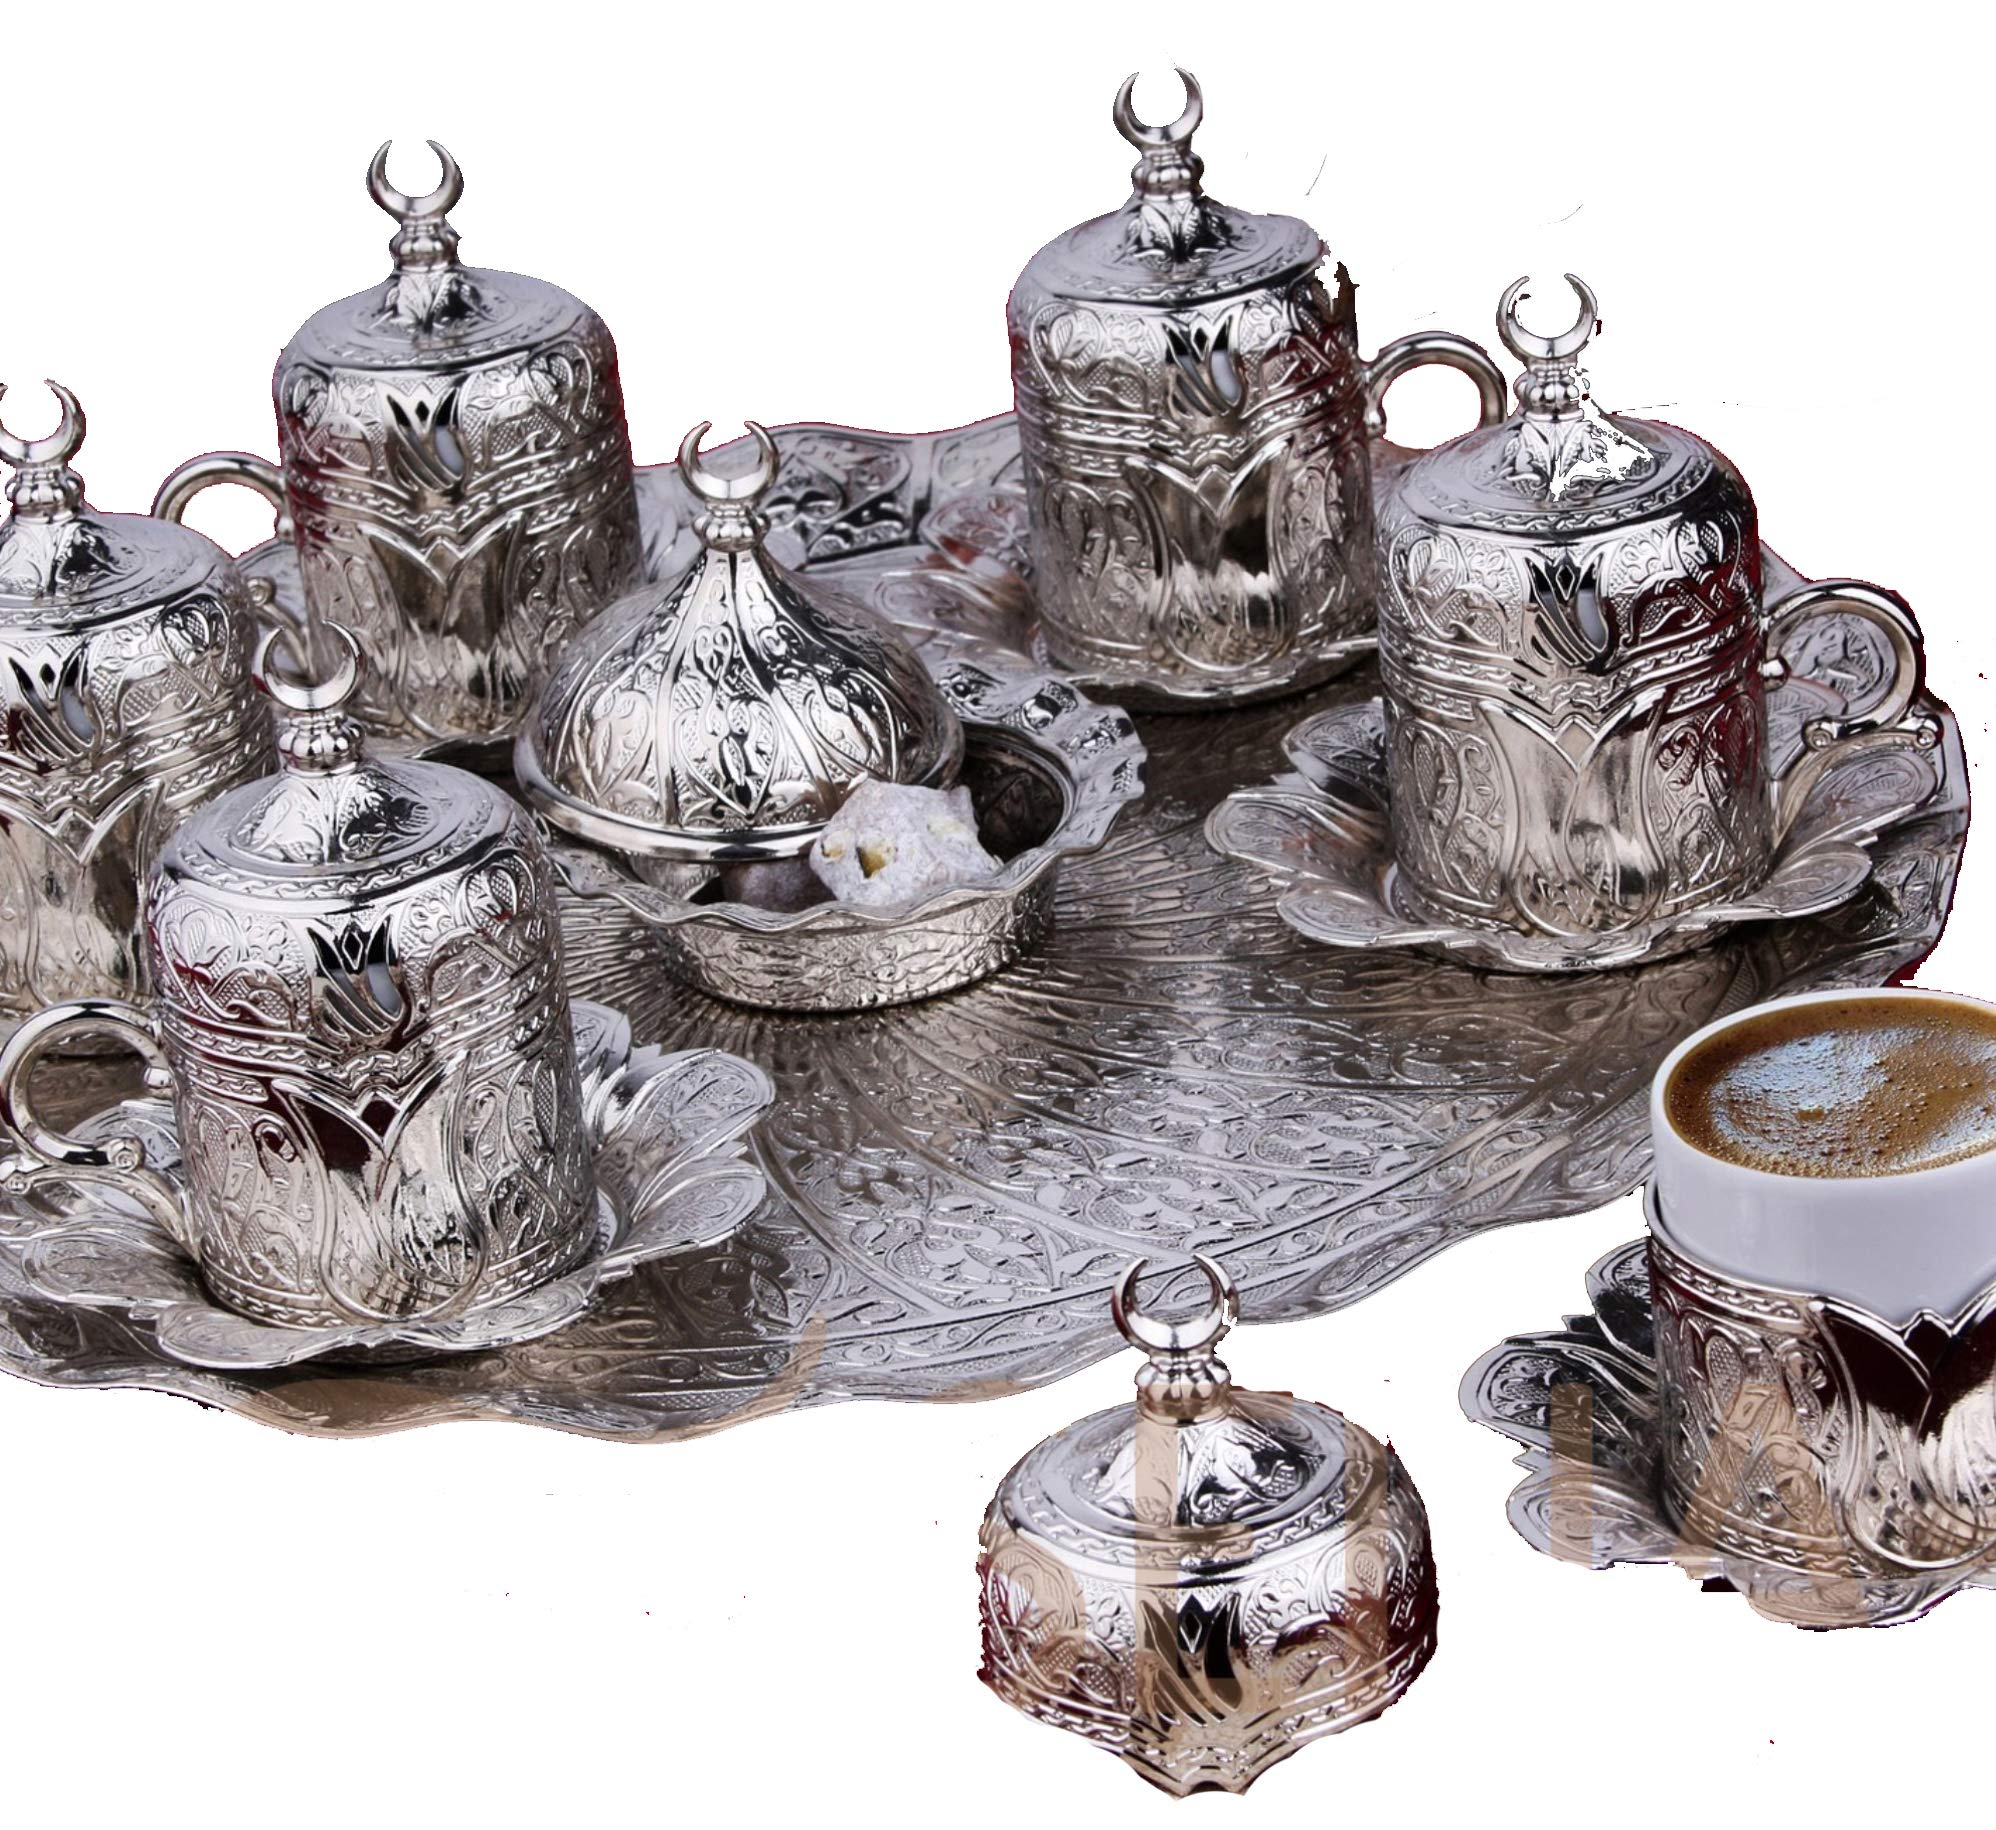 Gold Case Silver plated METAL Turkish, Arabic, Greek and Espresso Coffee Set for 6 - Made in Turkey - 27 pieced set with Bowl, Silver